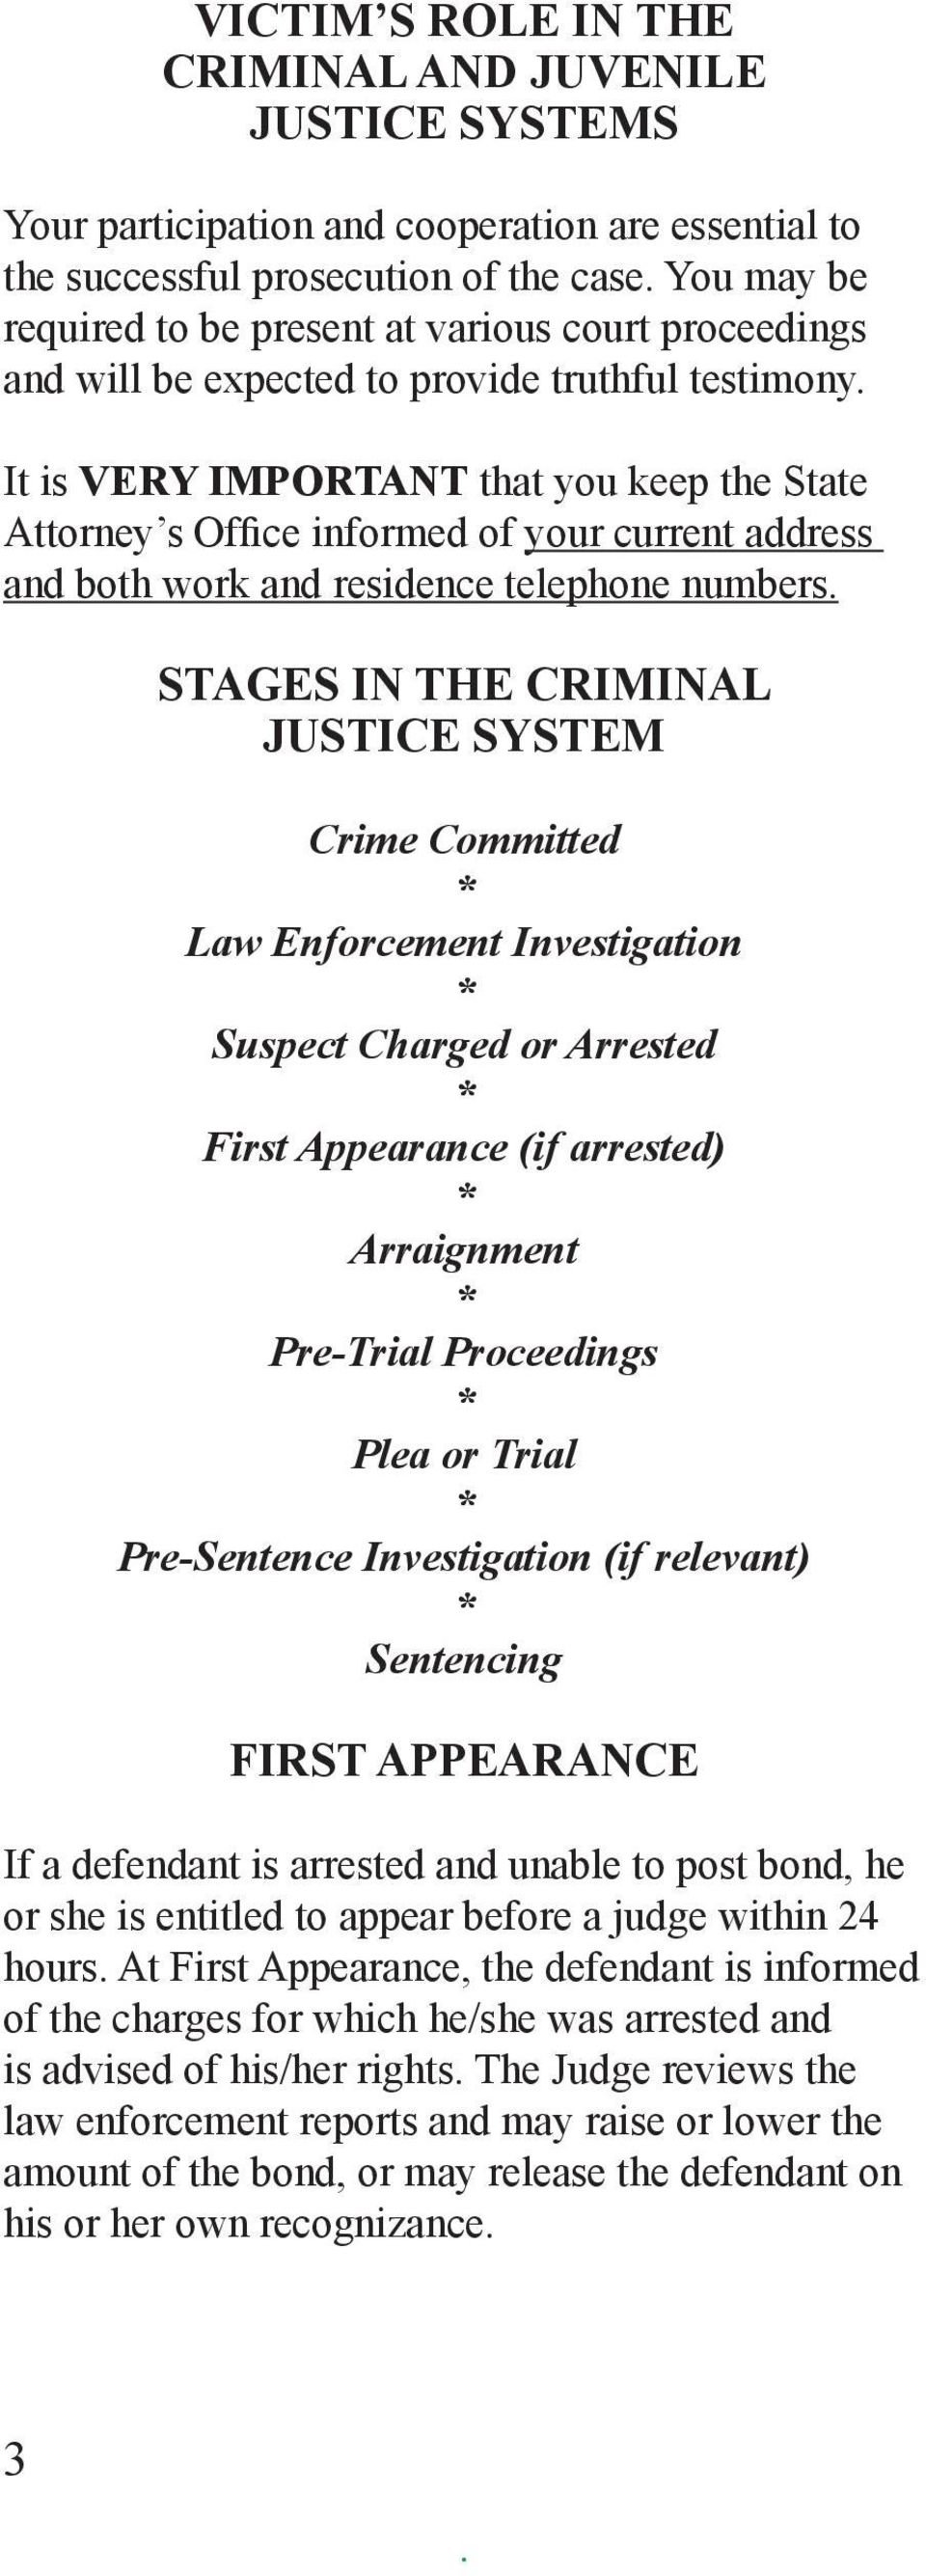 telephone numbers STAGES IN THE CRIMINAL JUSTICE SYSTEM Crime Committed * Law Enforcement Investigation * Suspect Charged or Arrested * First Appearance (if arrested) * Arraignment * Pre-Trial